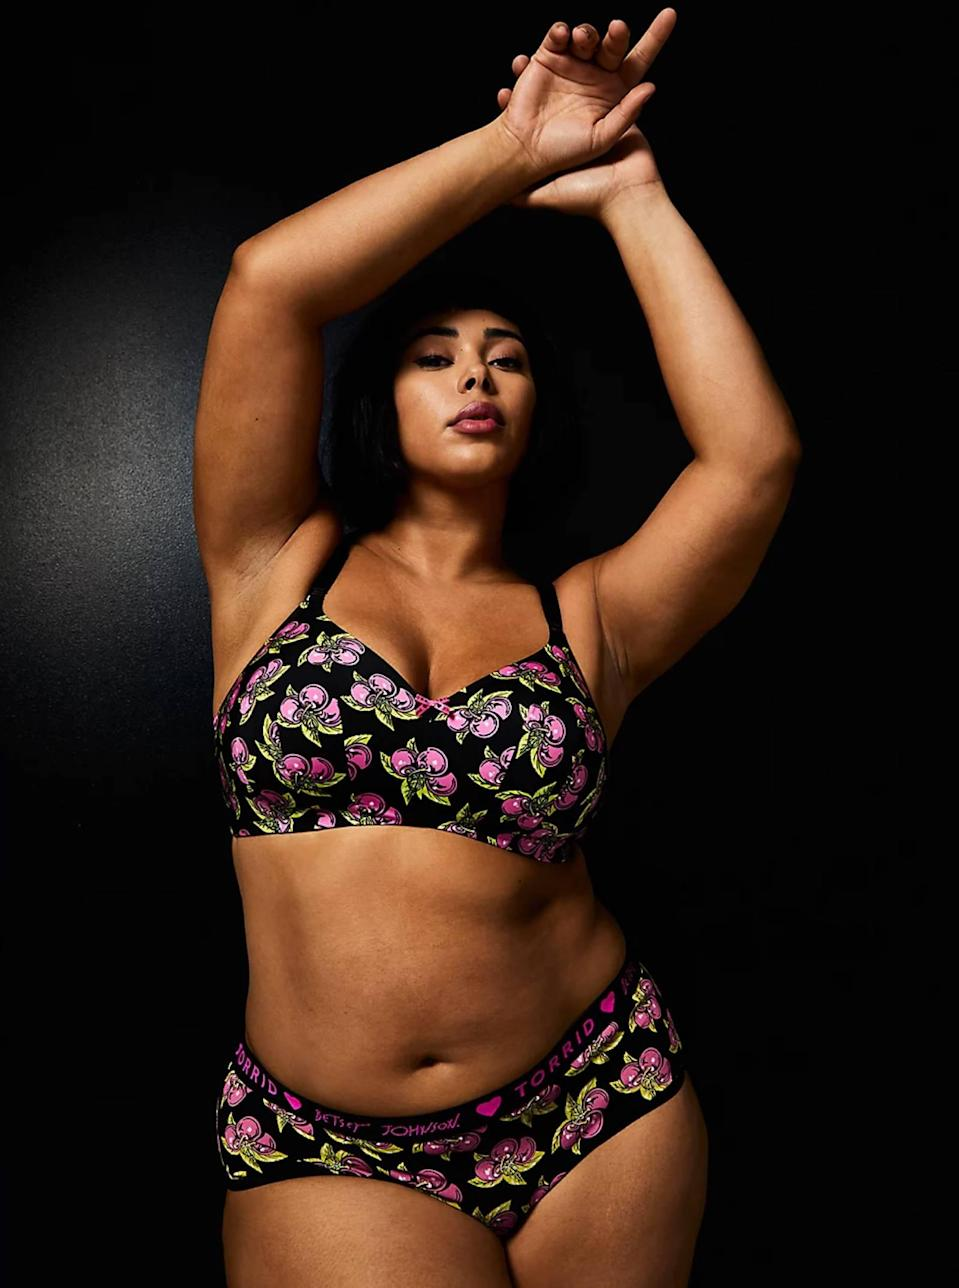 "<p><strong>Key selling points:</strong> Featuring celebrated designer Betsey Johnson's iconic cherry print, this super comfy microfiber bra features Torrid's ""Back Smoothing"" technology and can be seamlessly worn underneath everything from dresses to t-shirts.</p> <p><strong>What customers say:</strong> ""I work in a grooming salon and am lifting and bending and wet all day. This bra is comfortable, gives me shape all day and stands up to the wet environment! Bonus: It is CUTE AND FUN!!!"" — <em>SurrealSunshine, reviewer on</em> <a href=""https://cna.st/affiliate-link/8T4QTtG54o1pnBbVA44cyokVJcWT2TYVwpgGuaTceUq22Nr3qWZ1L4fTZirRk5AnP19gH9B1954wVWreaZzL3eUpwMrvAfnuUQzHHF9fuhX5BUMyzg4LkJnPVvEMZu8W4ZgikUPH7zhpcPmLP7YXd2inHXFAJdHY4TZ22rjXzngg3GUQUHYp1TZEwbACgkZ7LJXJ4Pw8MYTaKos1ETXk4mYCnxvFoSsEMHY1UACfq49Aj4b3Vs46A1t5JcC2QDRPnmMJmj7djfHZSP1pwdVMnVpnYVmThwj1cvZ?cid=606b58120c9c81653826c180"" rel=""nofollow noopener"" target=""_blank"" data-ylk=""slk:Torrid"" class=""link rapid-noclick-resp""><em>Torrid</em></a></p> $64, Torrid. <a href=""https://www.torrid.com/product/betsey-johnson-black-cherry-360%C2%B0-back-smoothing%E2%84%A2-lightly-lined-everyday-wire-free-bra/13937932.html?"" rel=""nofollow noopener"" target=""_blank"" data-ylk=""slk:Get it now!"" class=""link rapid-noclick-resp"">Get it now!</a>"